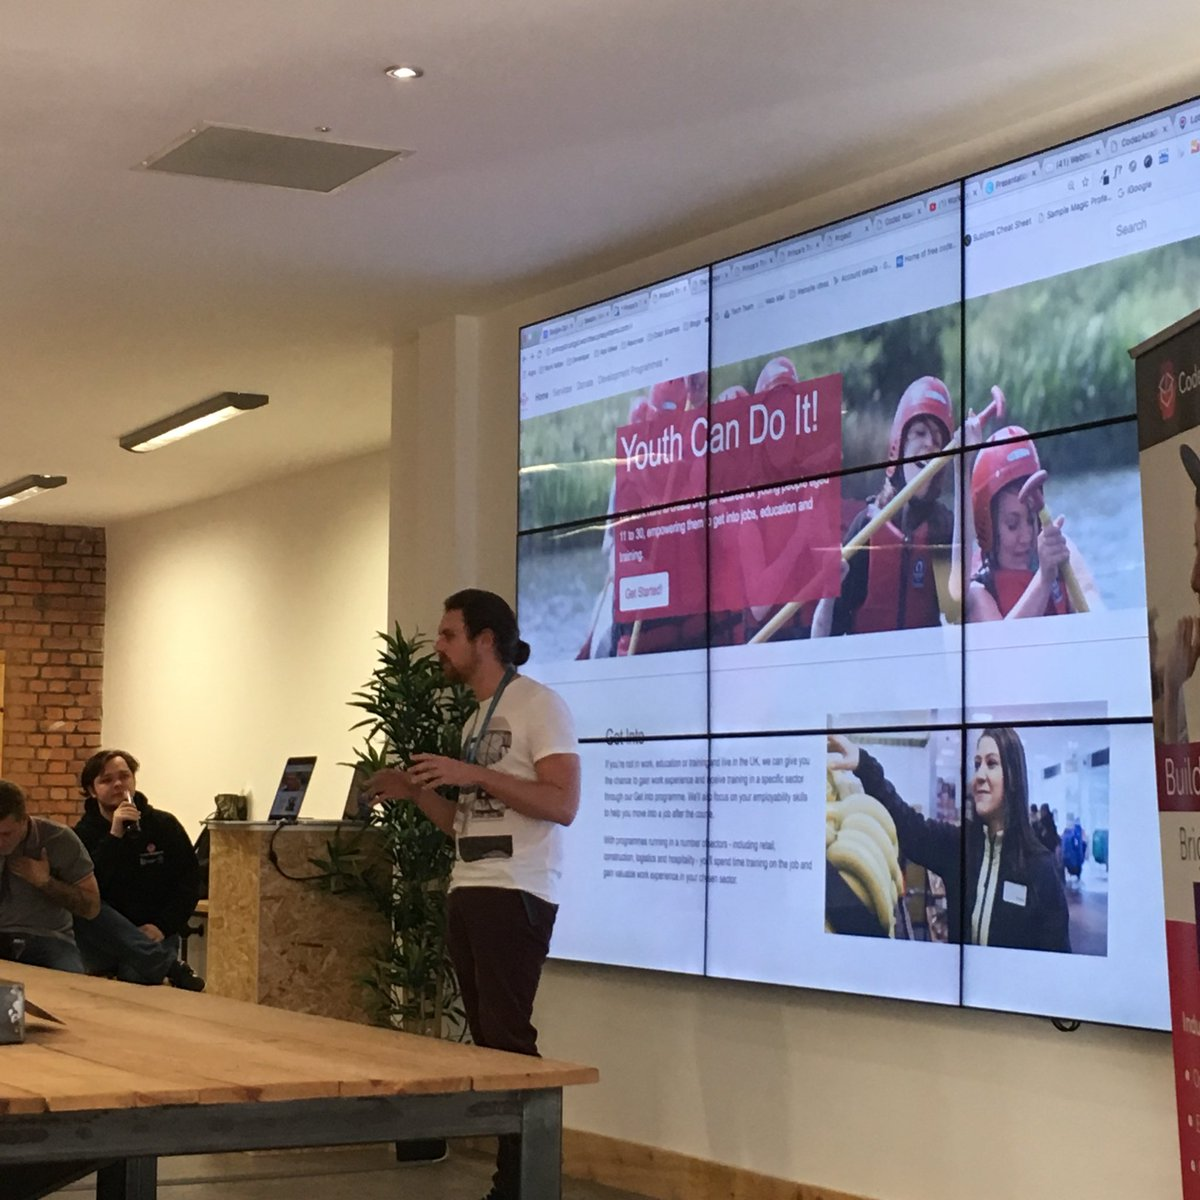 #GetintoDigital showcase @PrincesTrustWal @CodezAcademy @BigLearningCo - Dean walking us through what our amazing group have developed #coding #film #web Thanks to support from @Nominet<br>http://pic.twitter.com/ePeRVNclcm